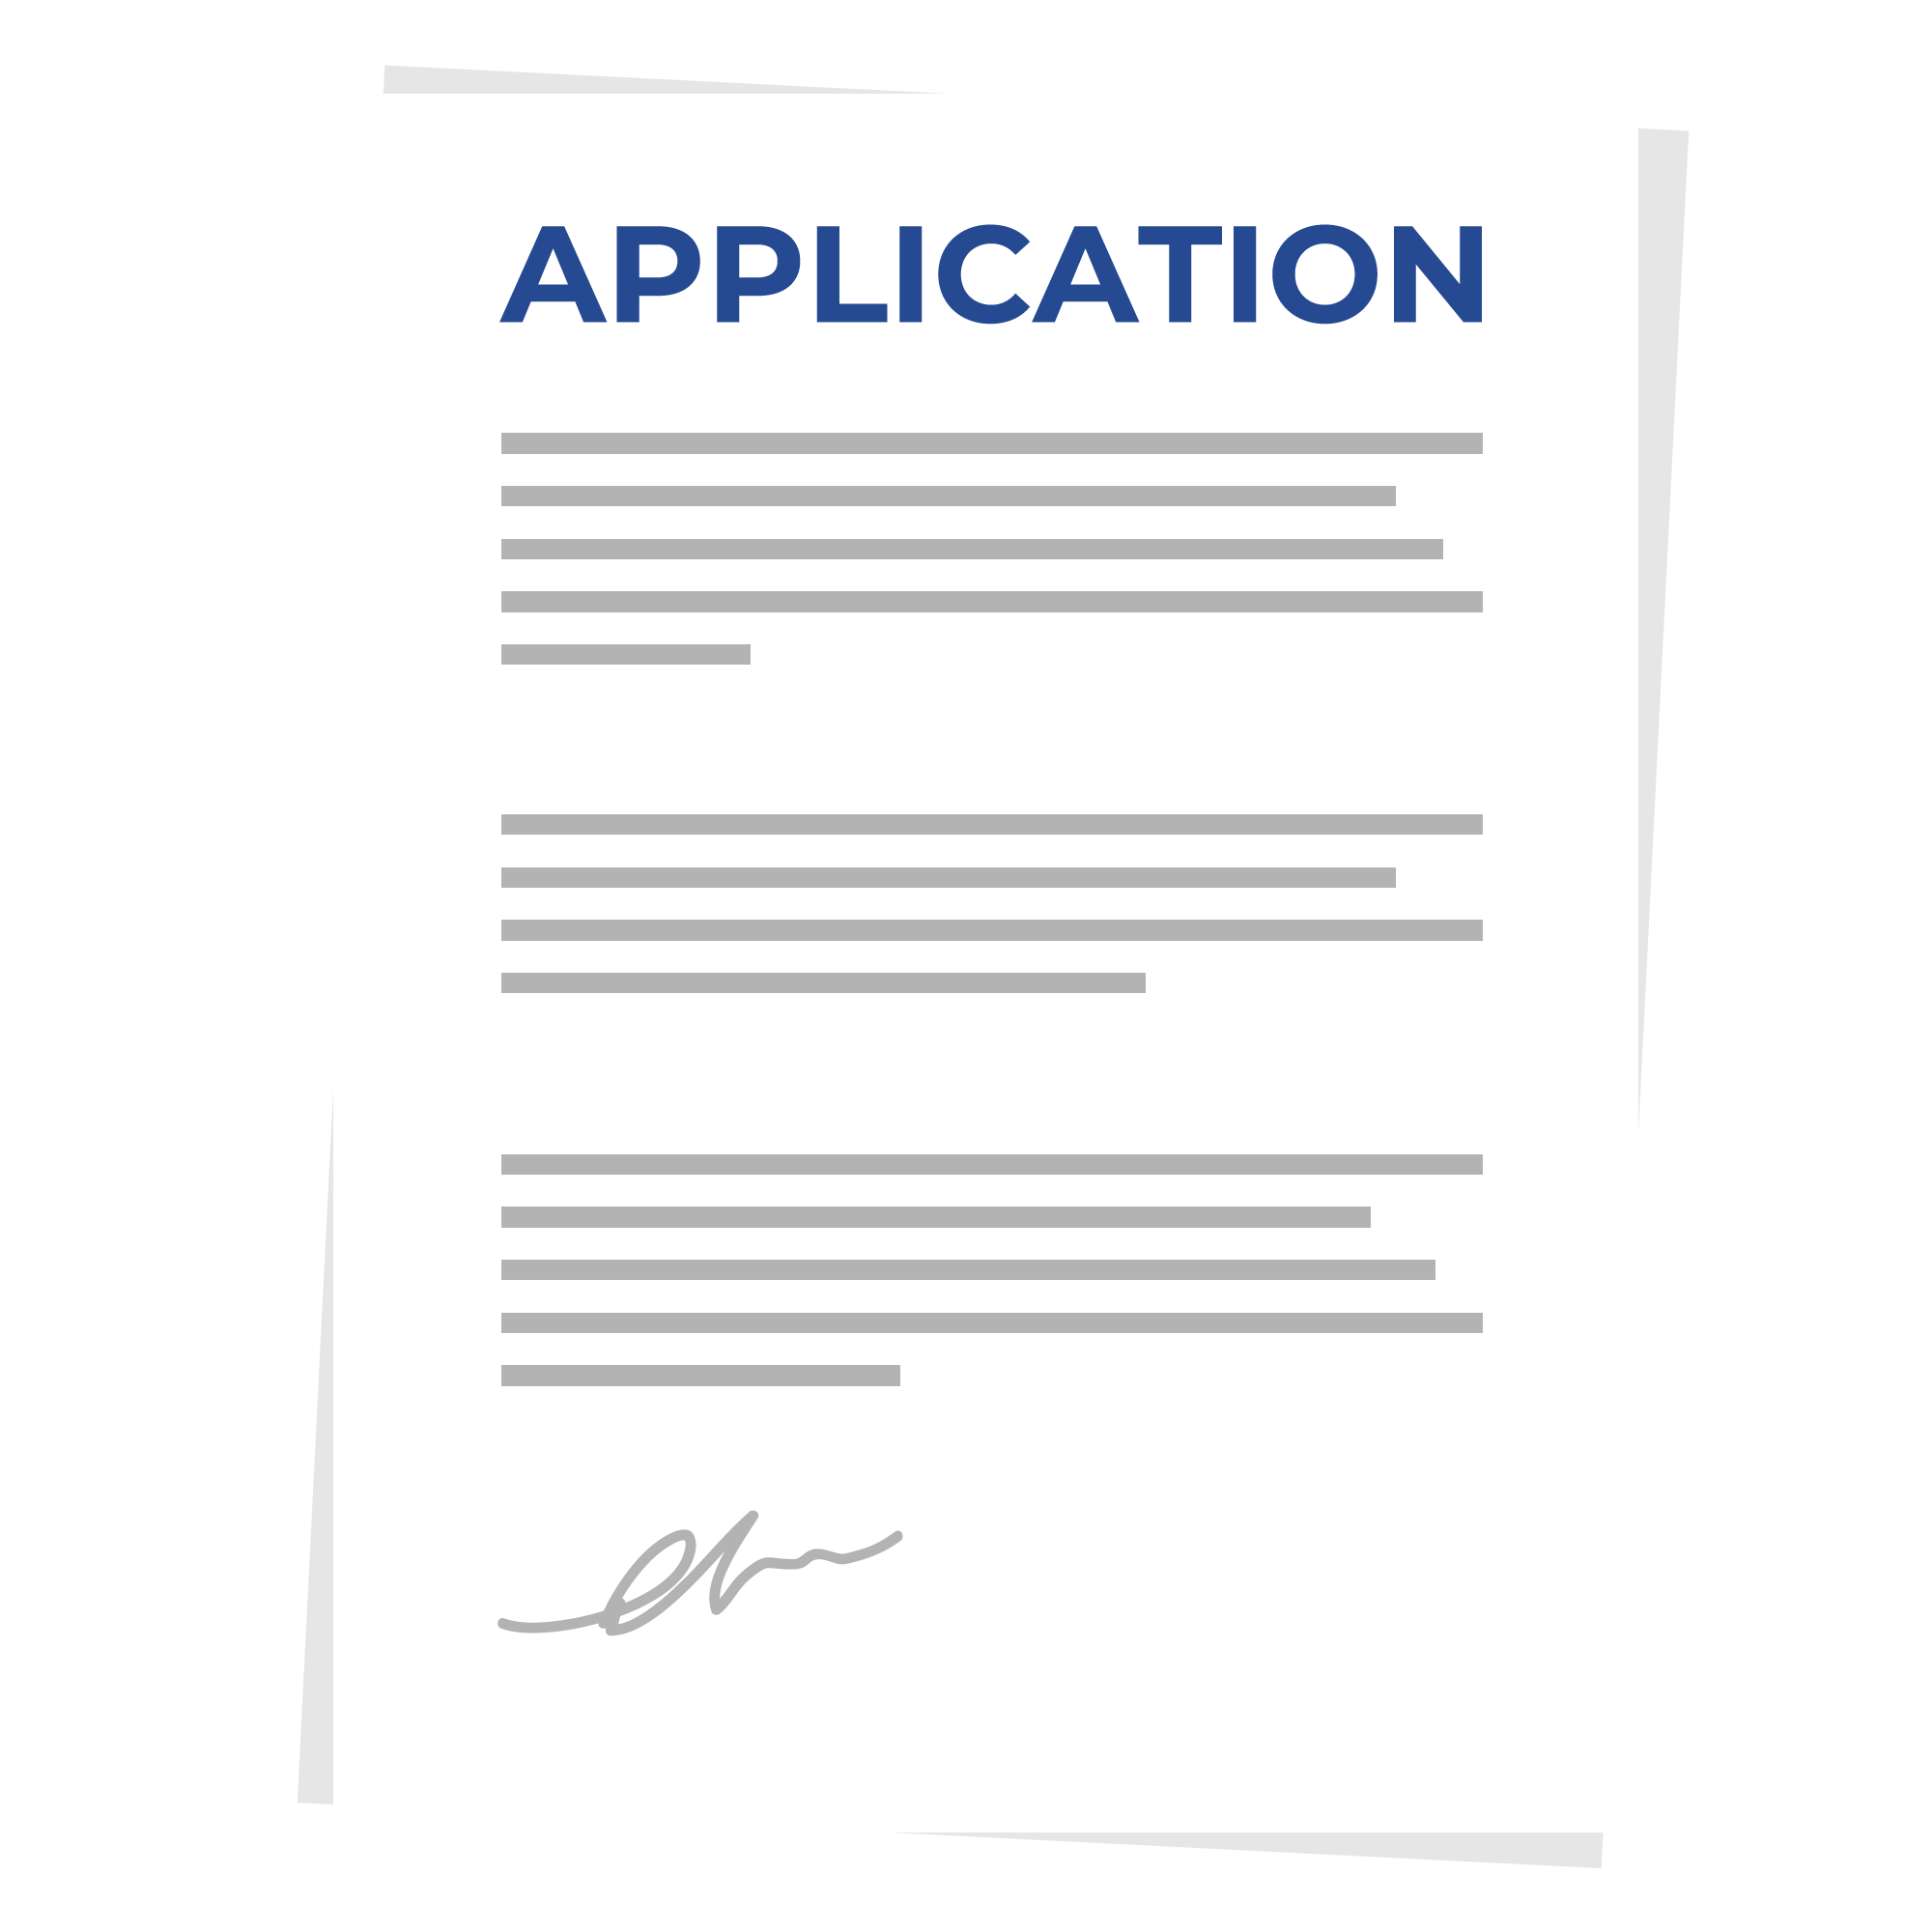 A vector image of a sample Application